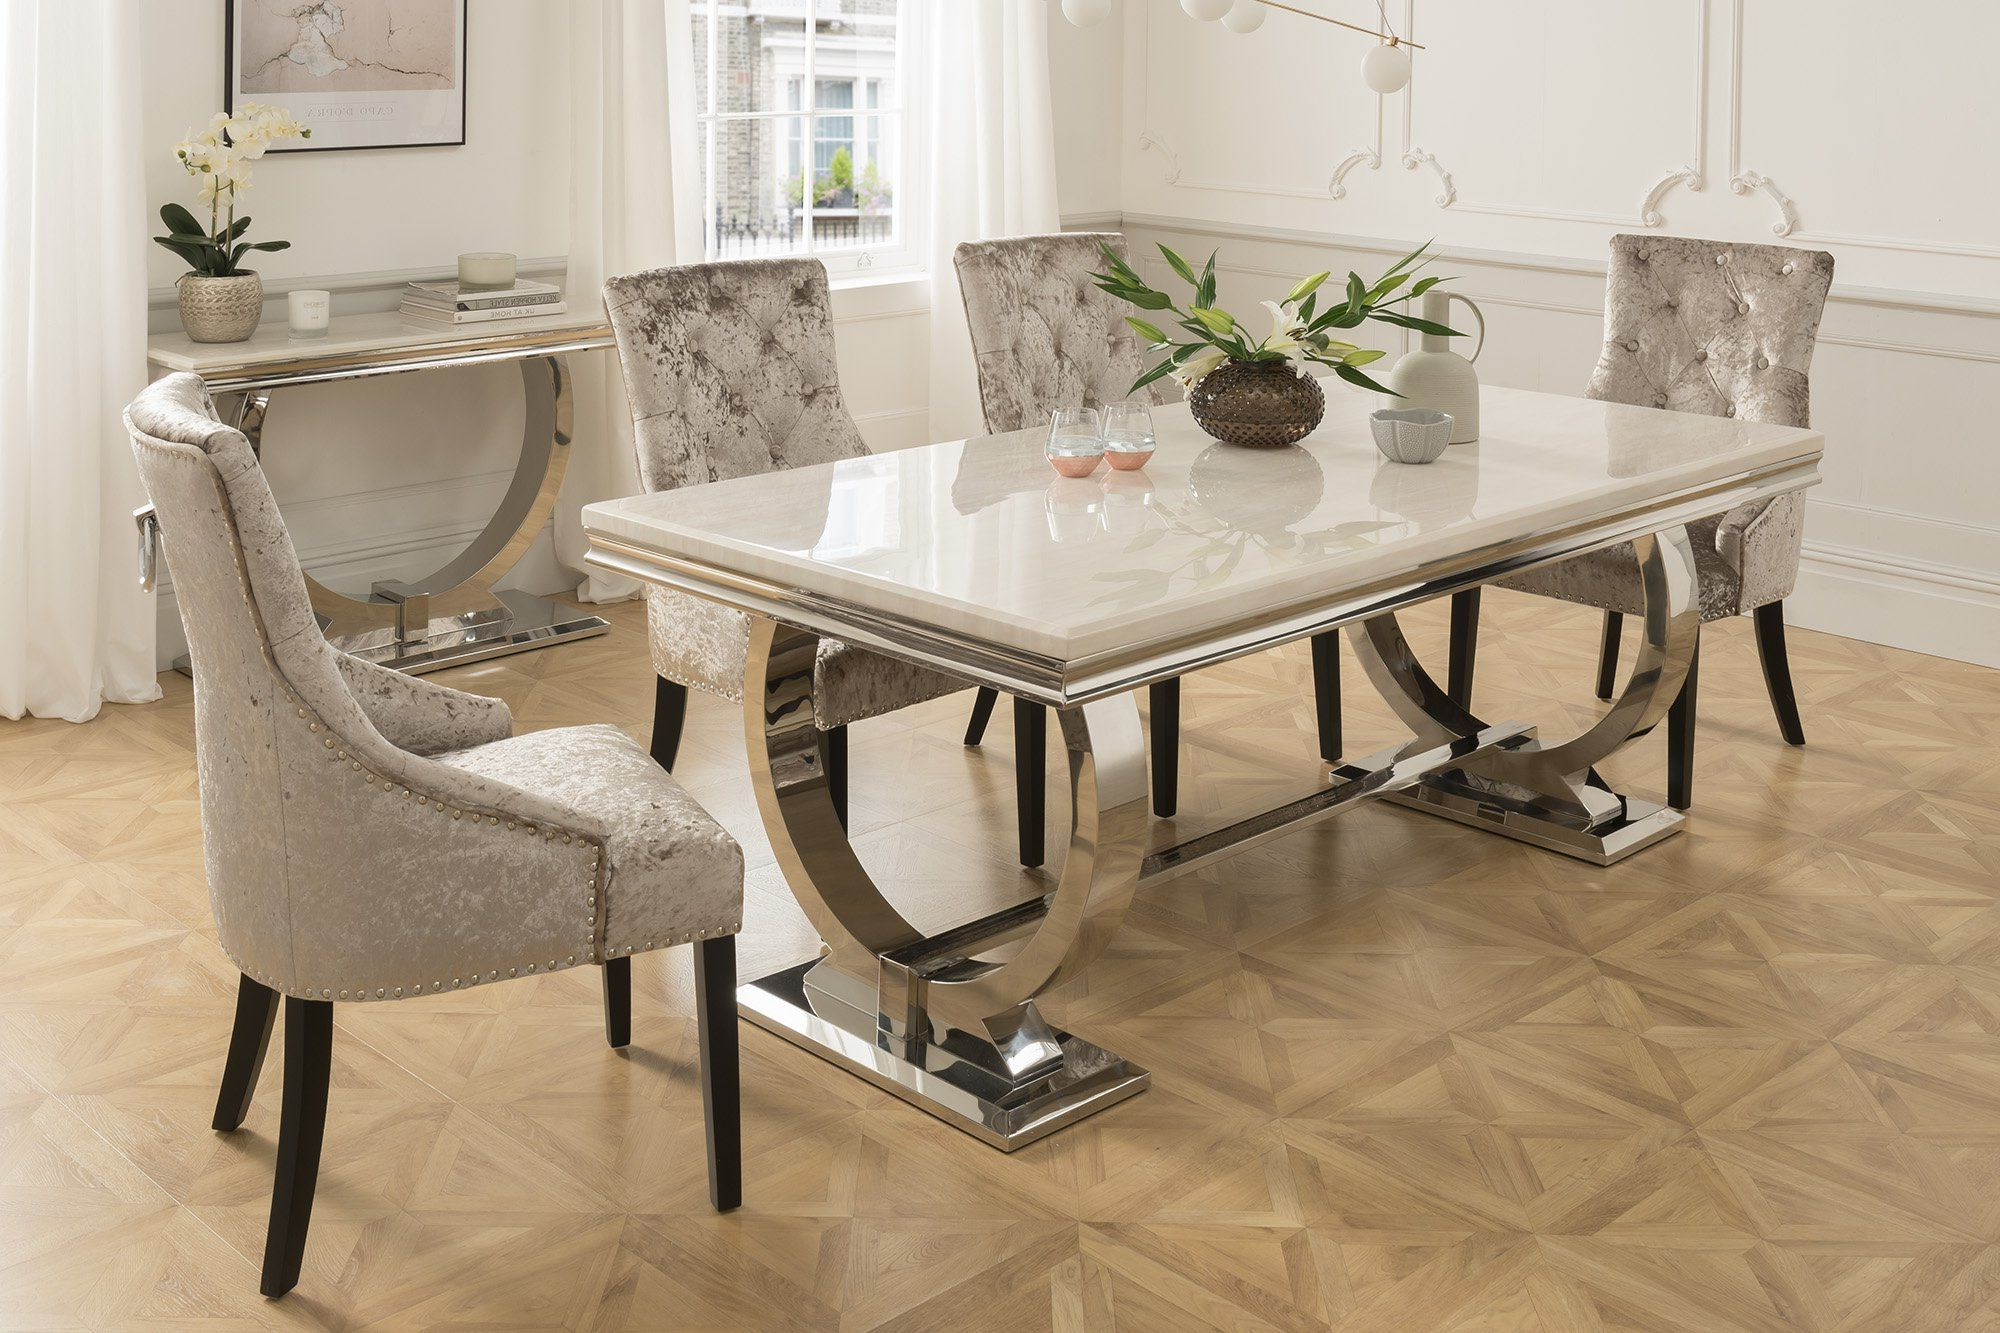 The Arabella 6 Seater Dining Set With 4 Or 6 Chairs In 2020 Regarding Latest 4 Seater Round Wooden Dining Tables With Chrome Legs (Gallery 9 of 30)